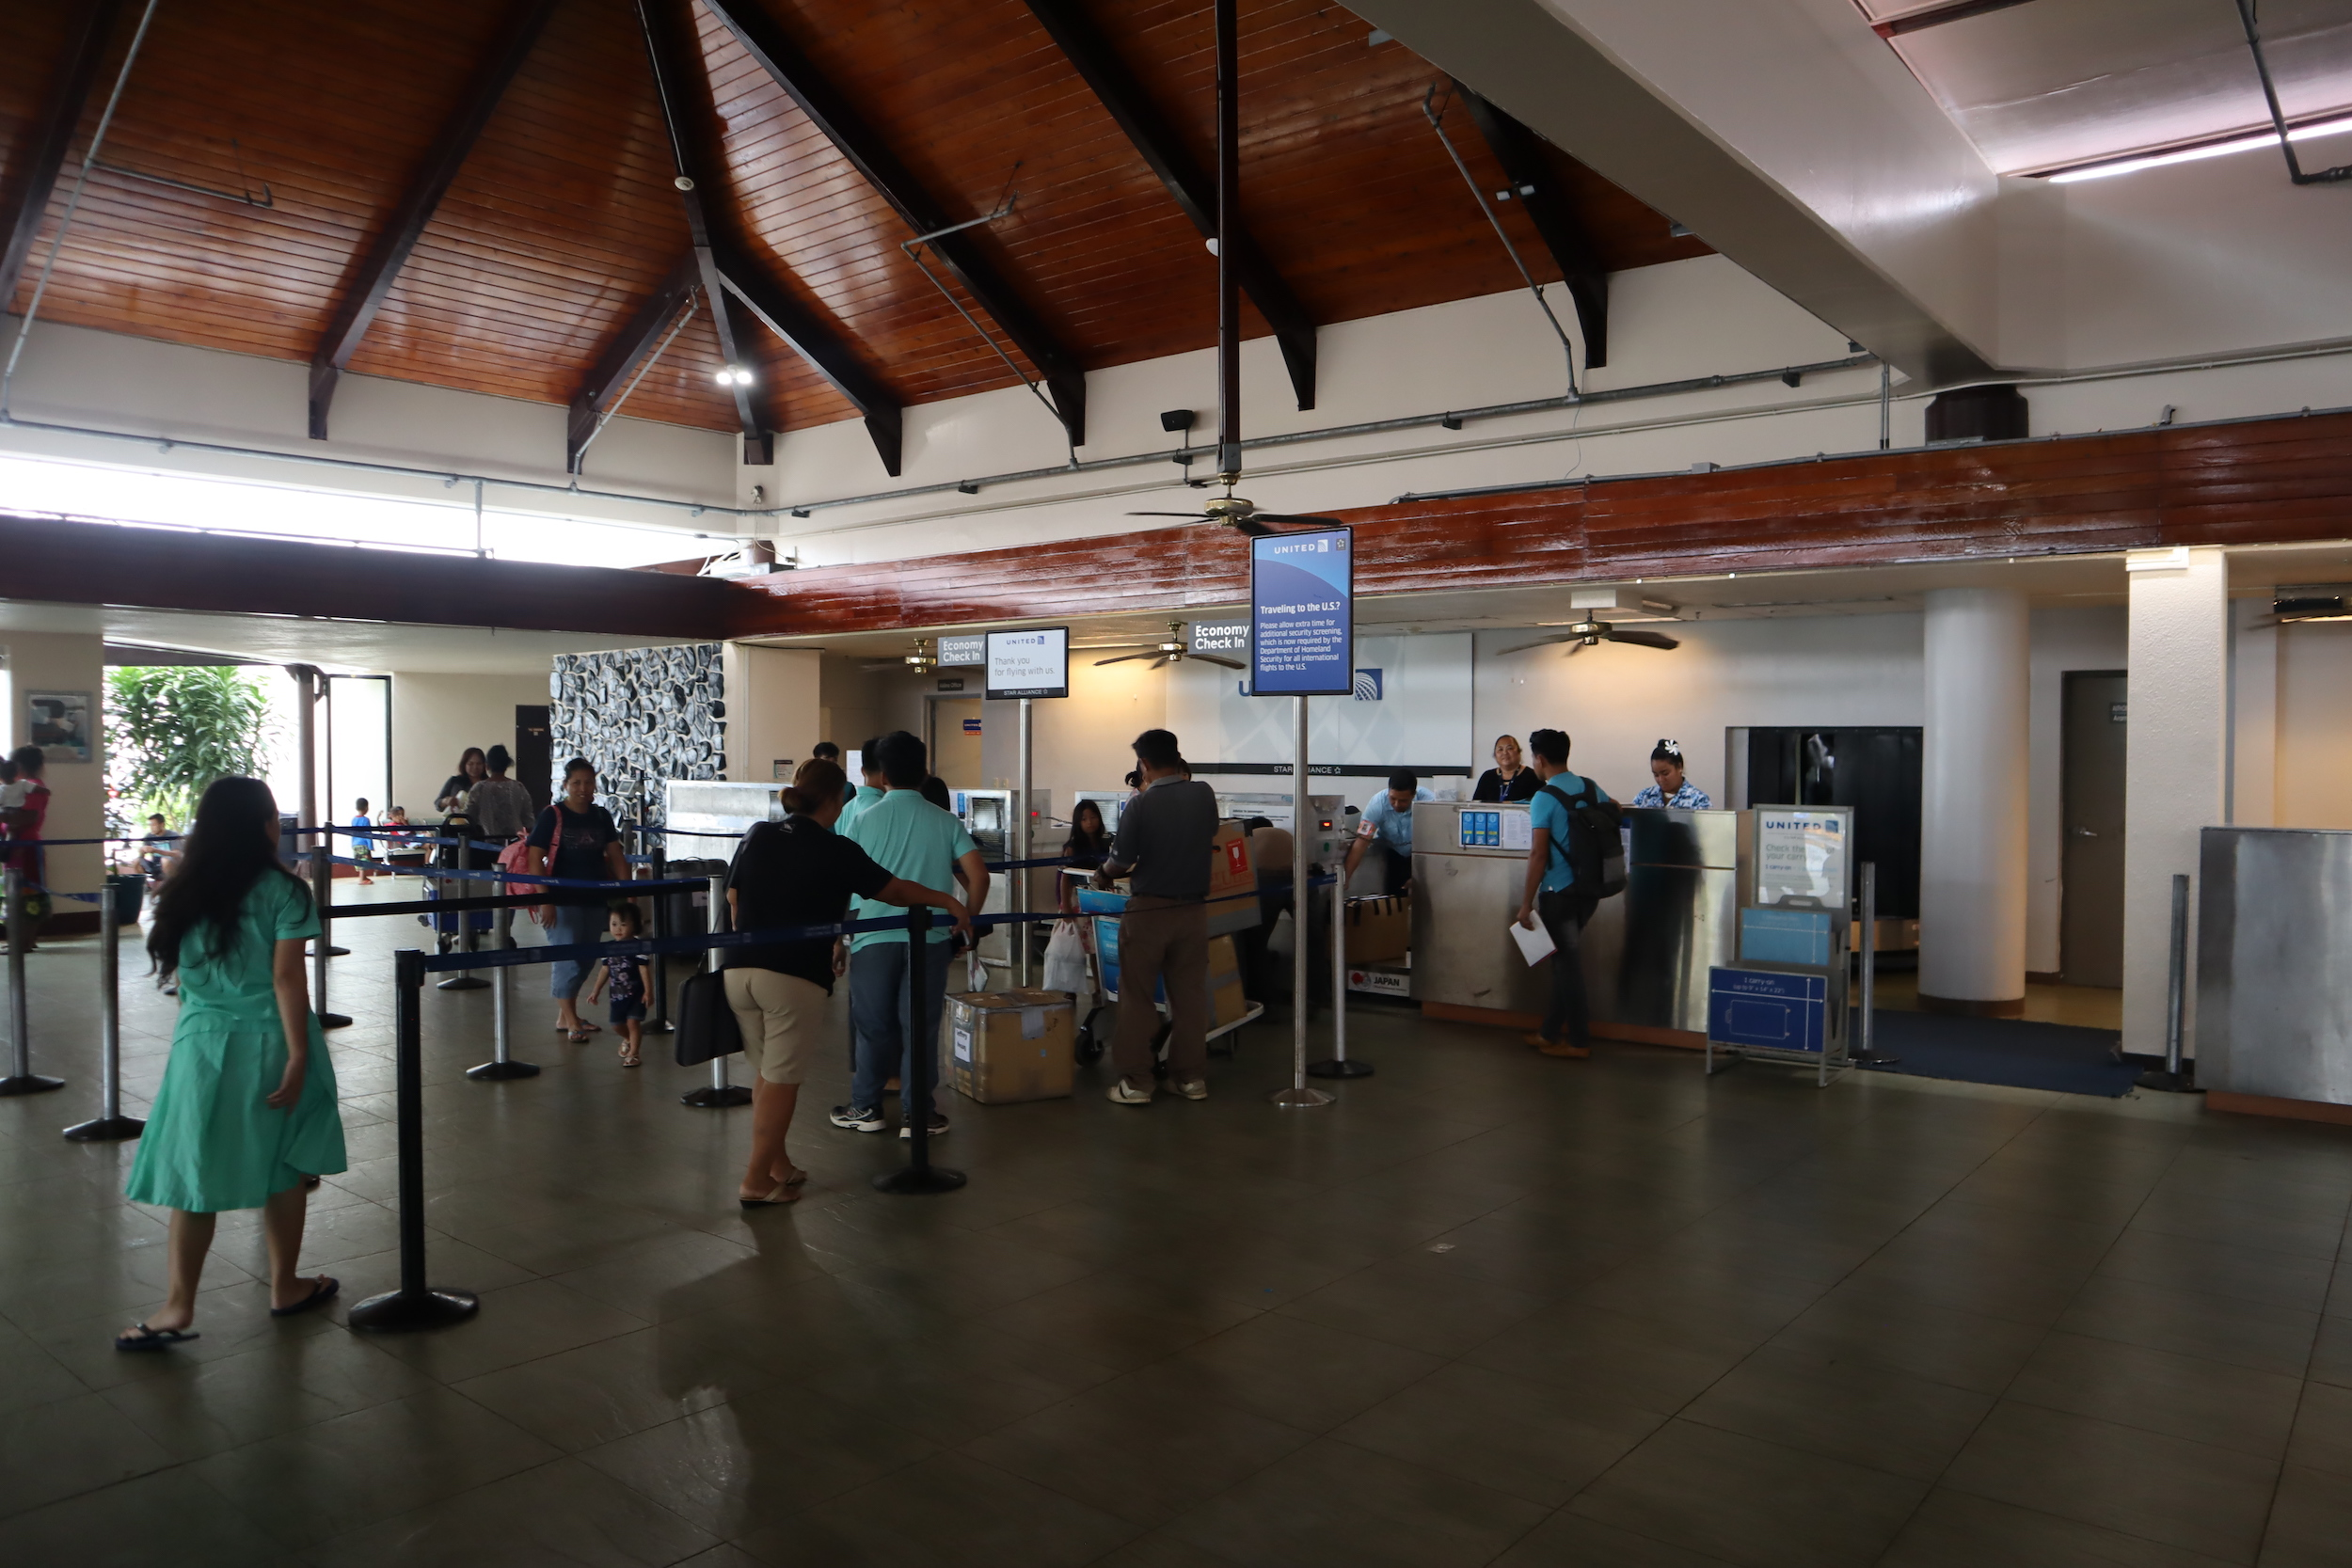 Pohnpei International Airport – United Airlines check-in desk